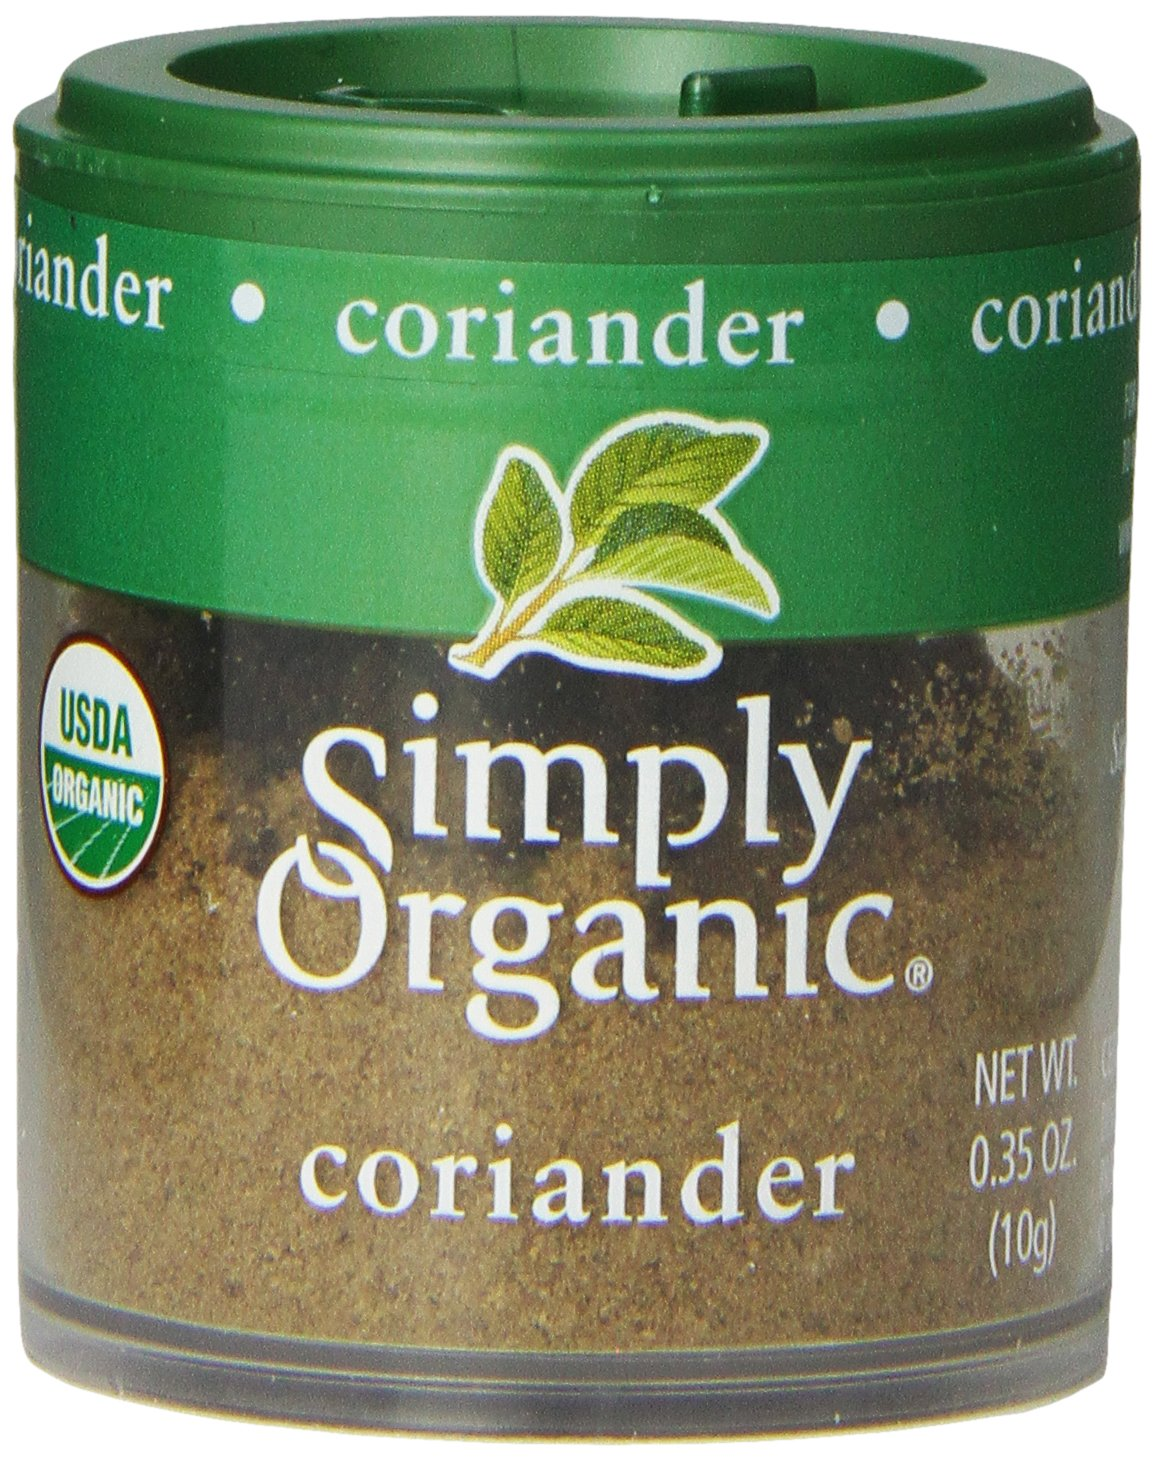 Simply Organic Coriander Seed Ground Certified Organic, 0.35-Ounce Containers (Pack of 6)